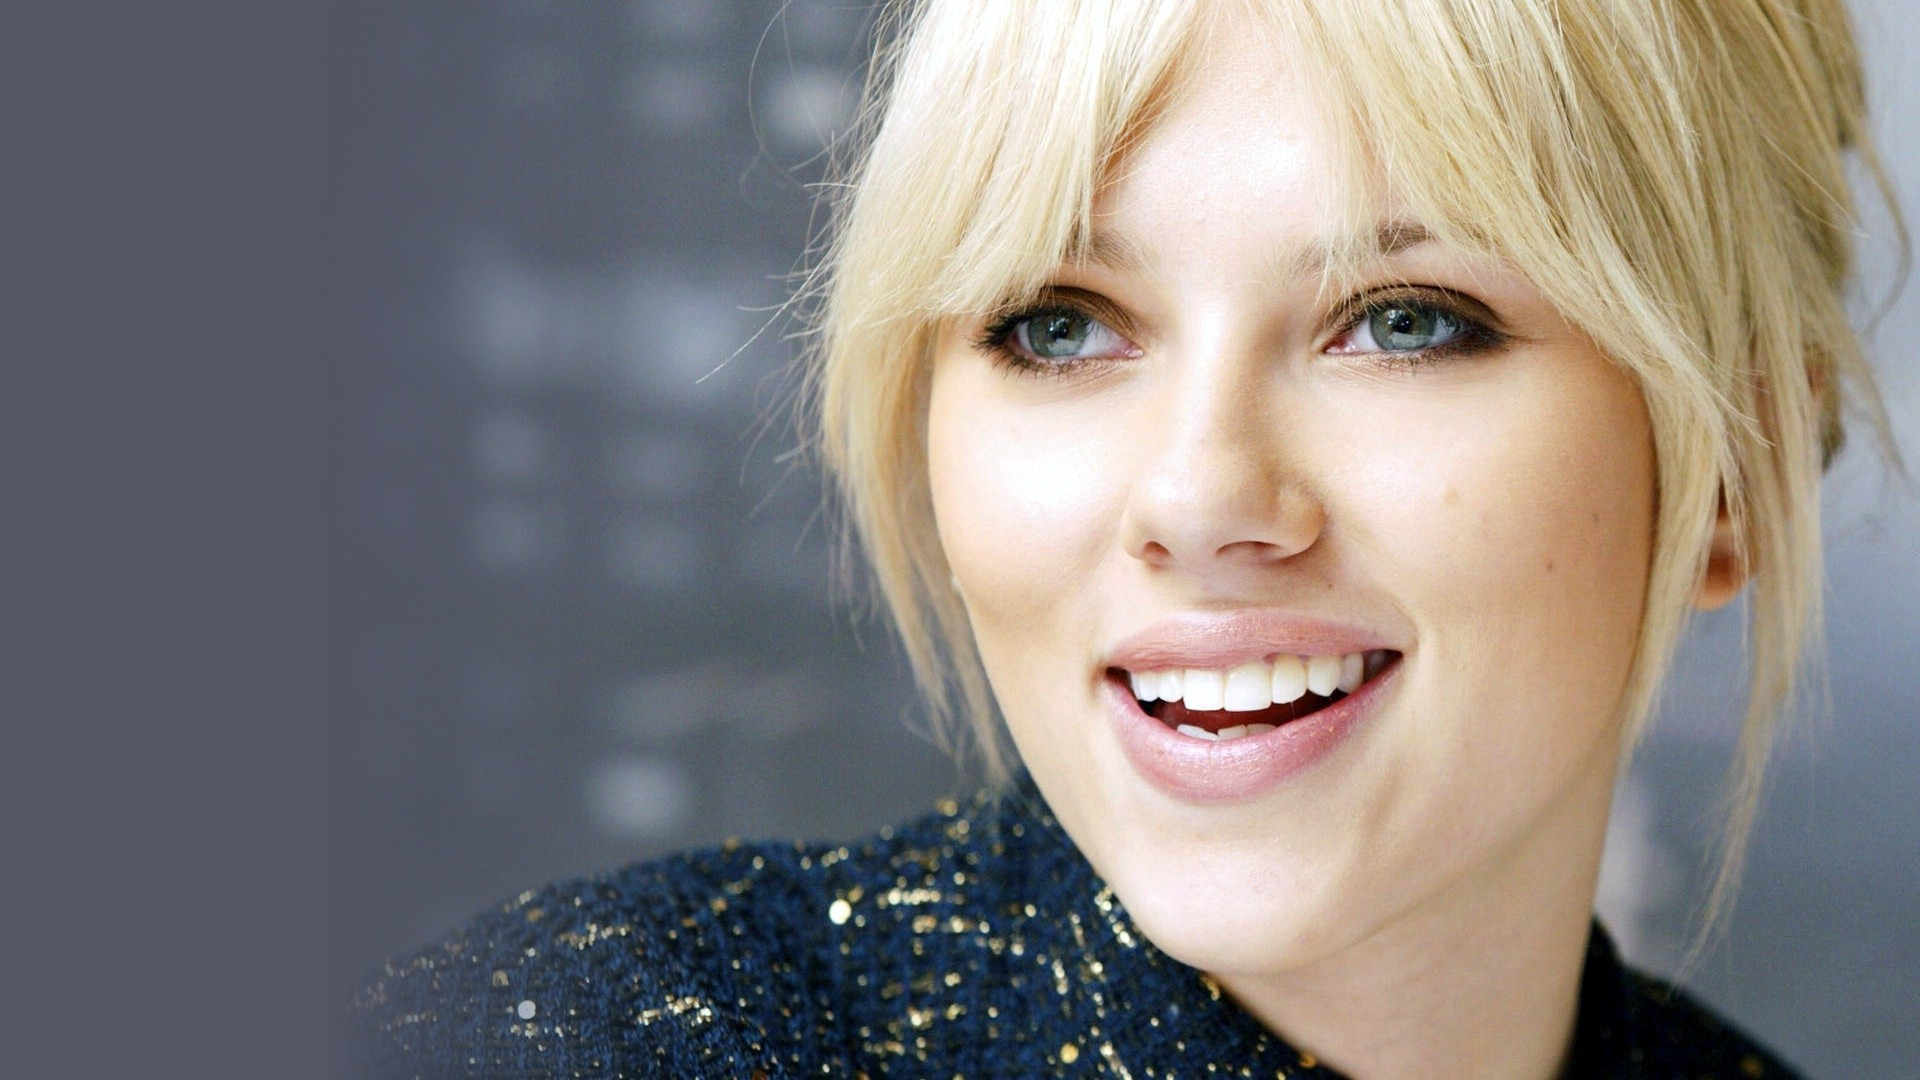 Scarlett Johansson Wallpaper: [41+] Scarlett Johansson Wallpaper Free On WallpaperSafari